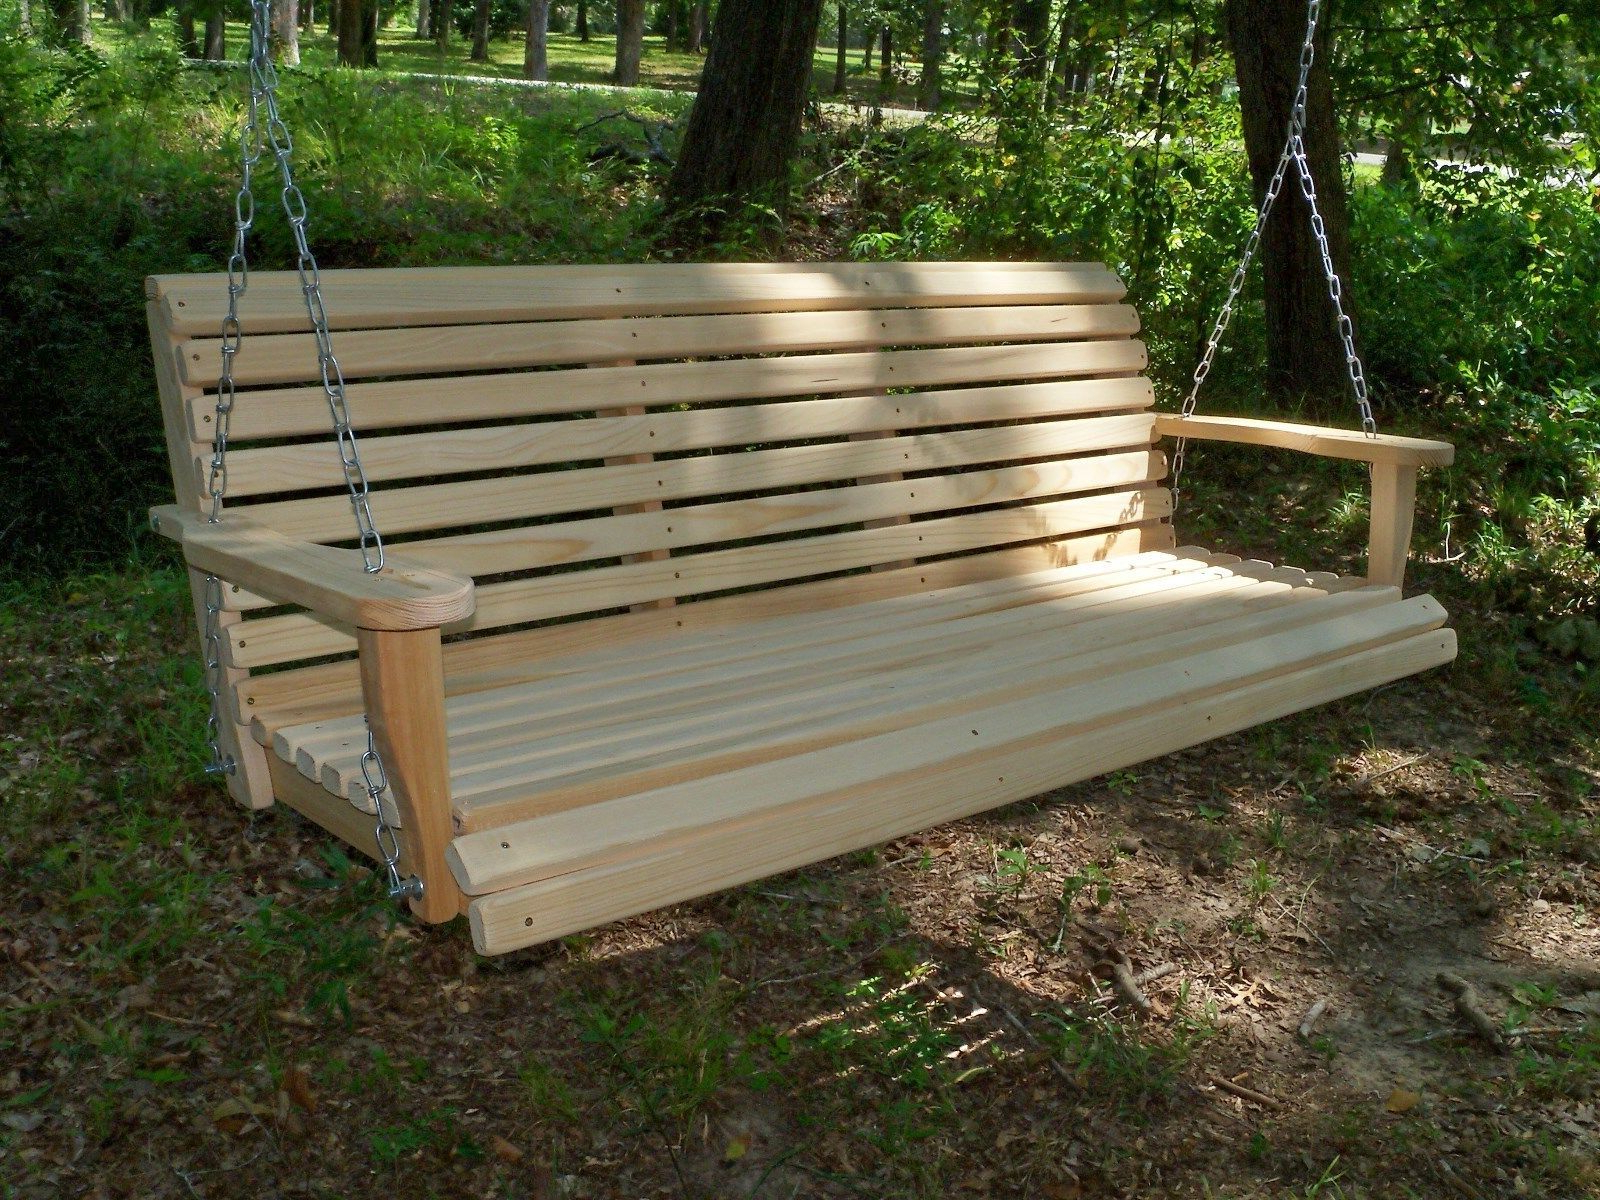 5 Ft Cedar Swings With Springs Regarding Well Liked Details About 5Ft Reg Cypress Wood Wooden Porch Bench Swing (View 14 of 30)